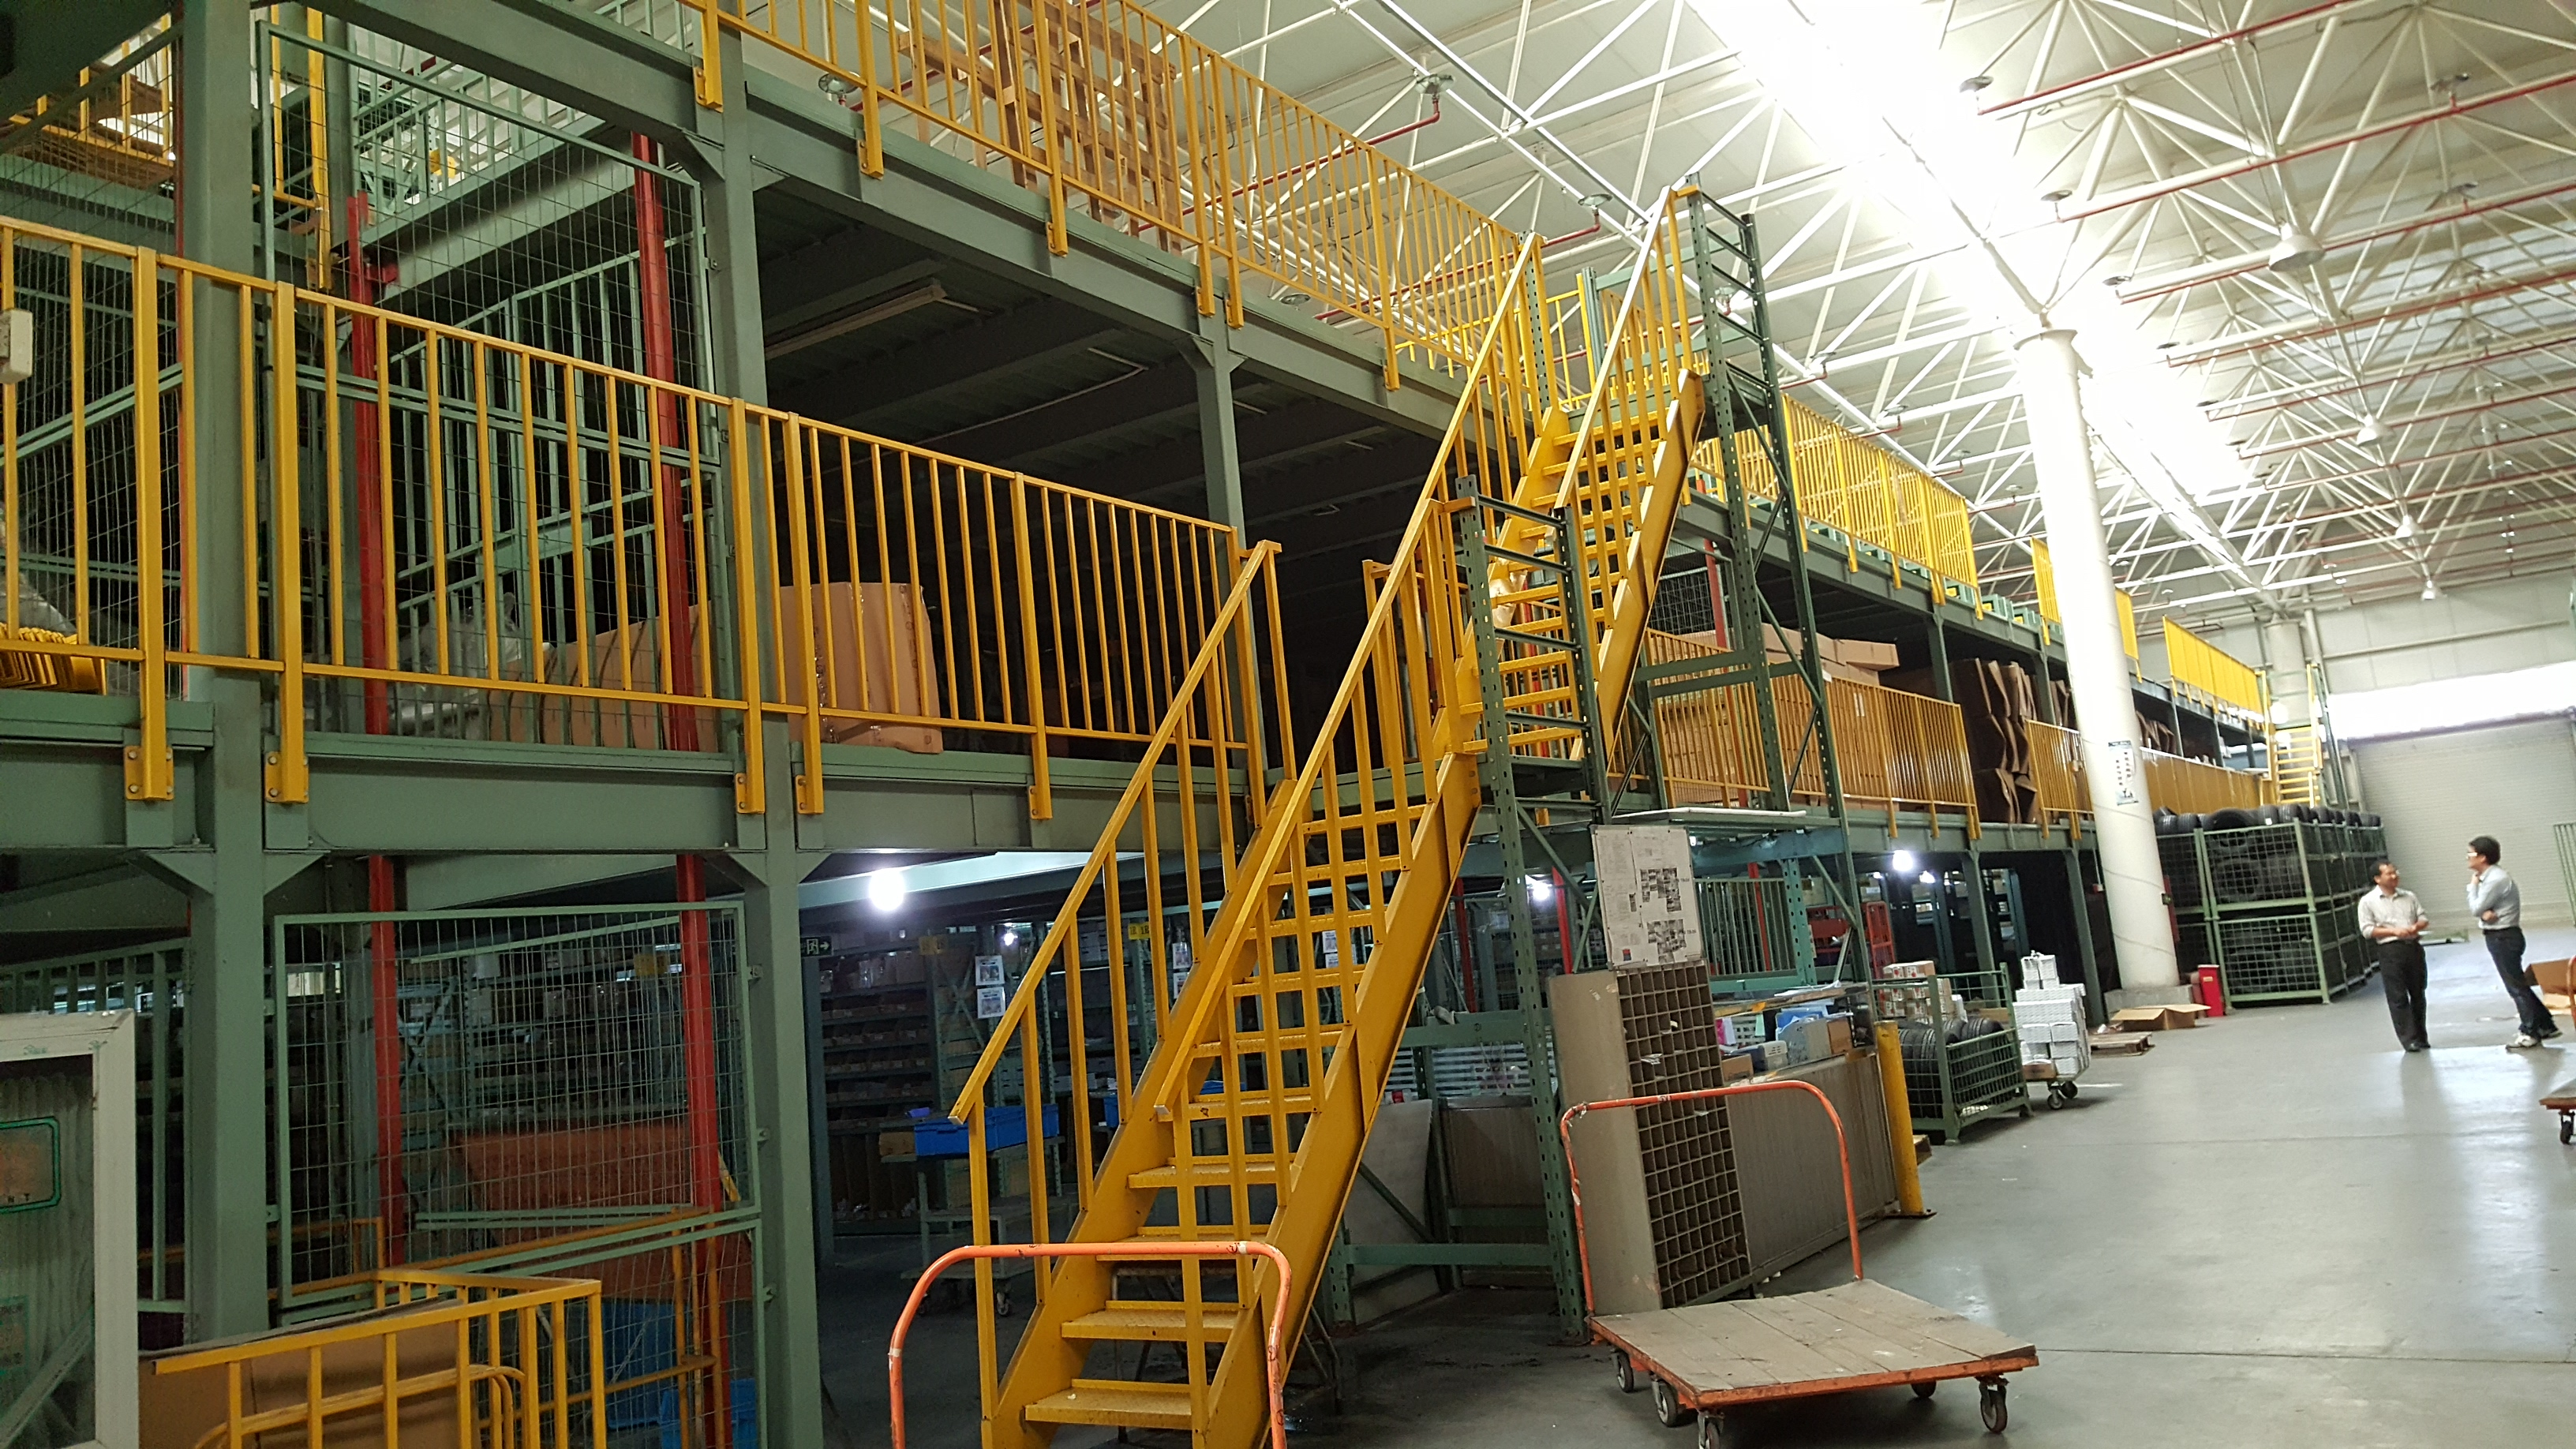 What are the application advantages of the mezzanine floor?